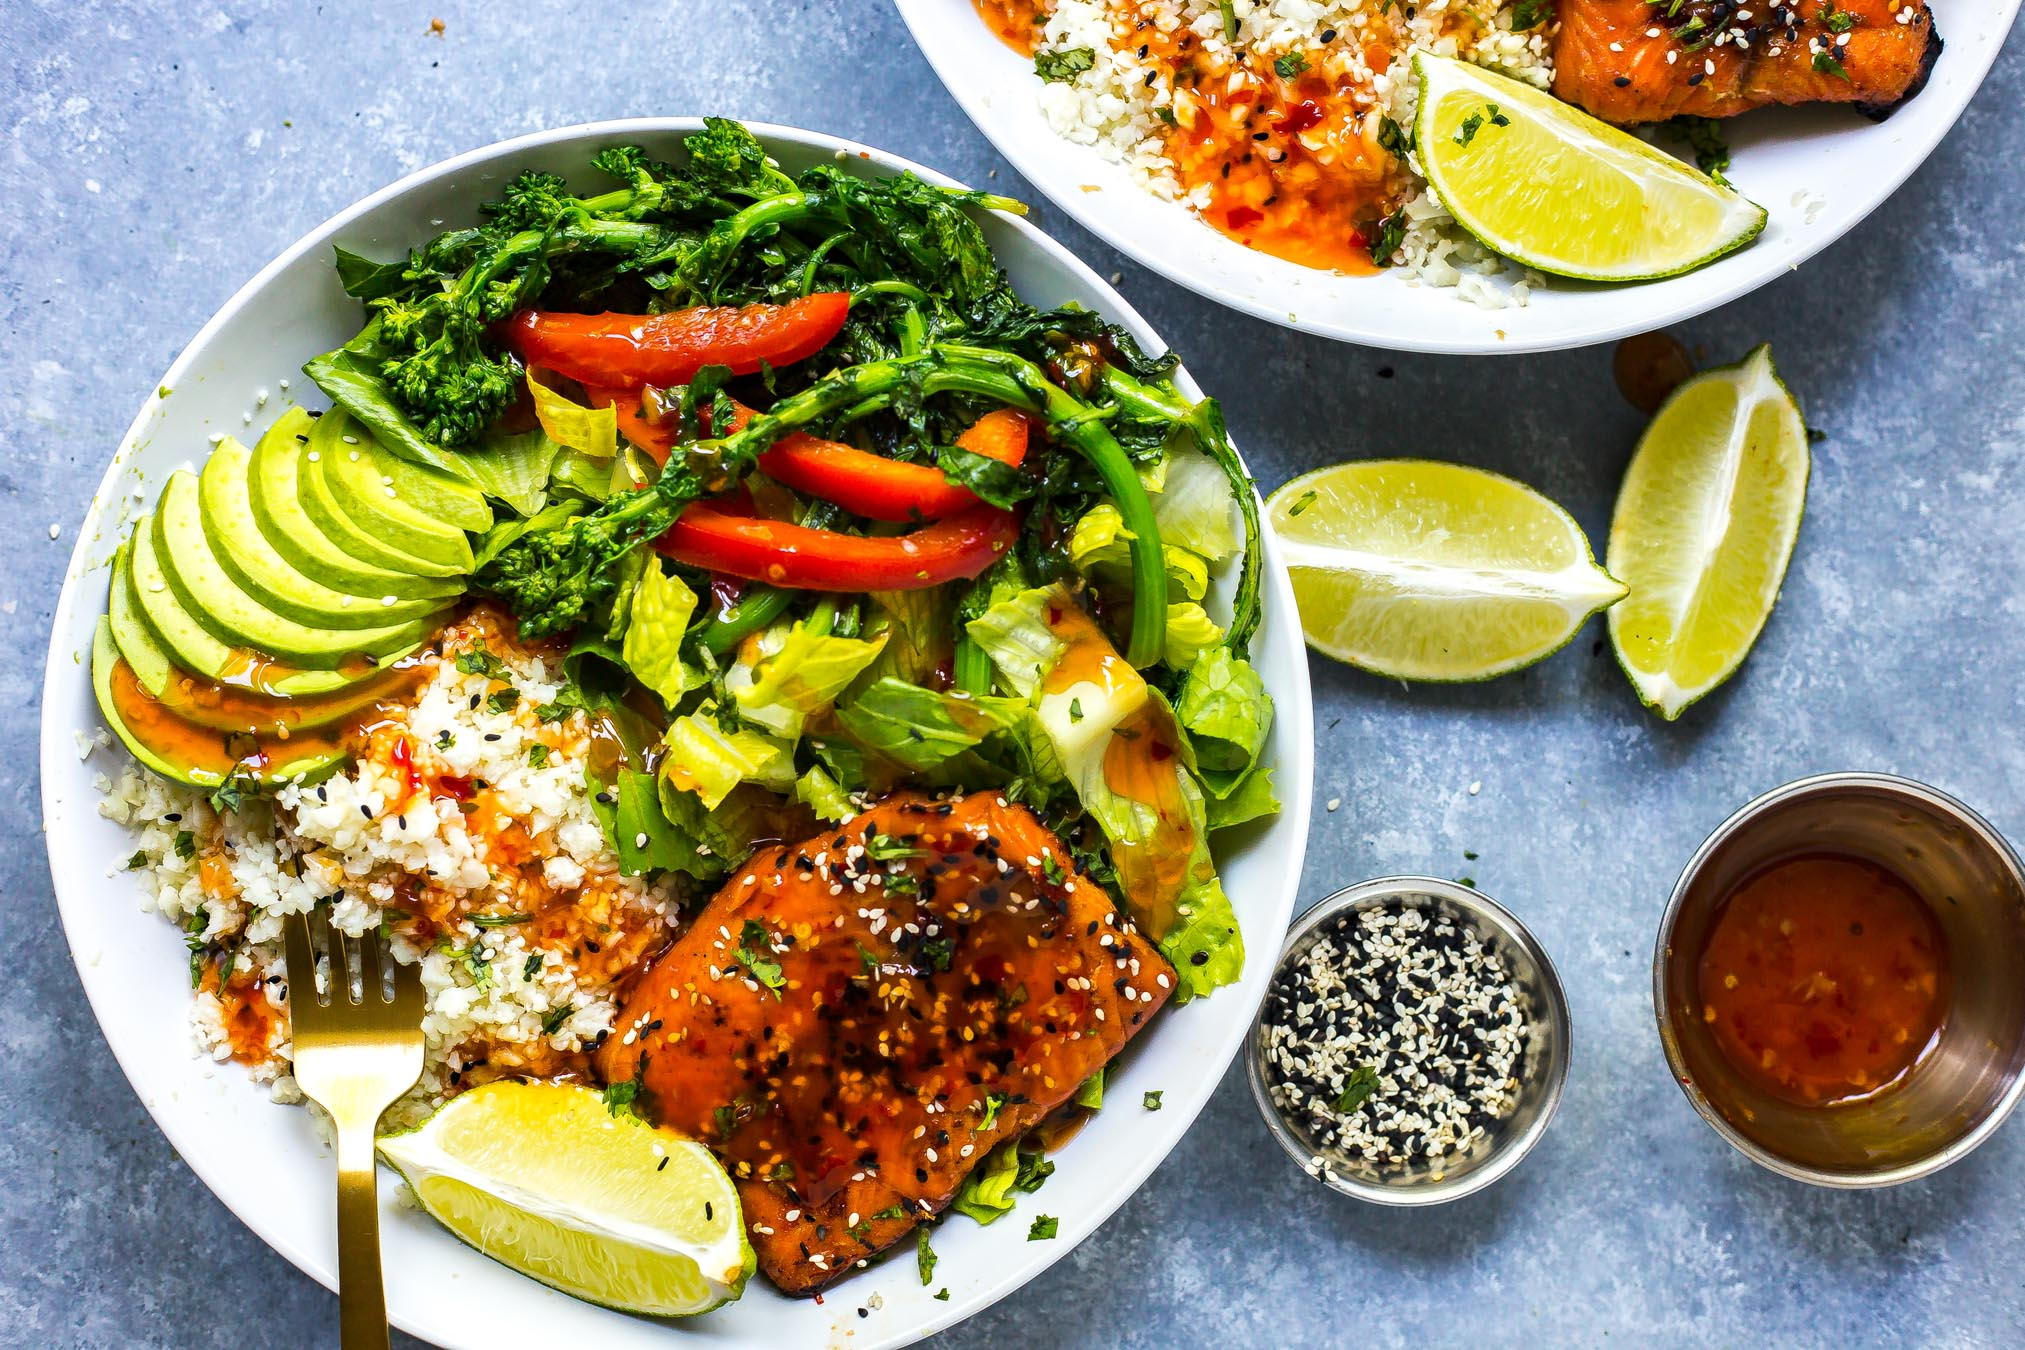 Chili Lime Salmon Bowls with Broccoli Rabe and Cauliflower Rice